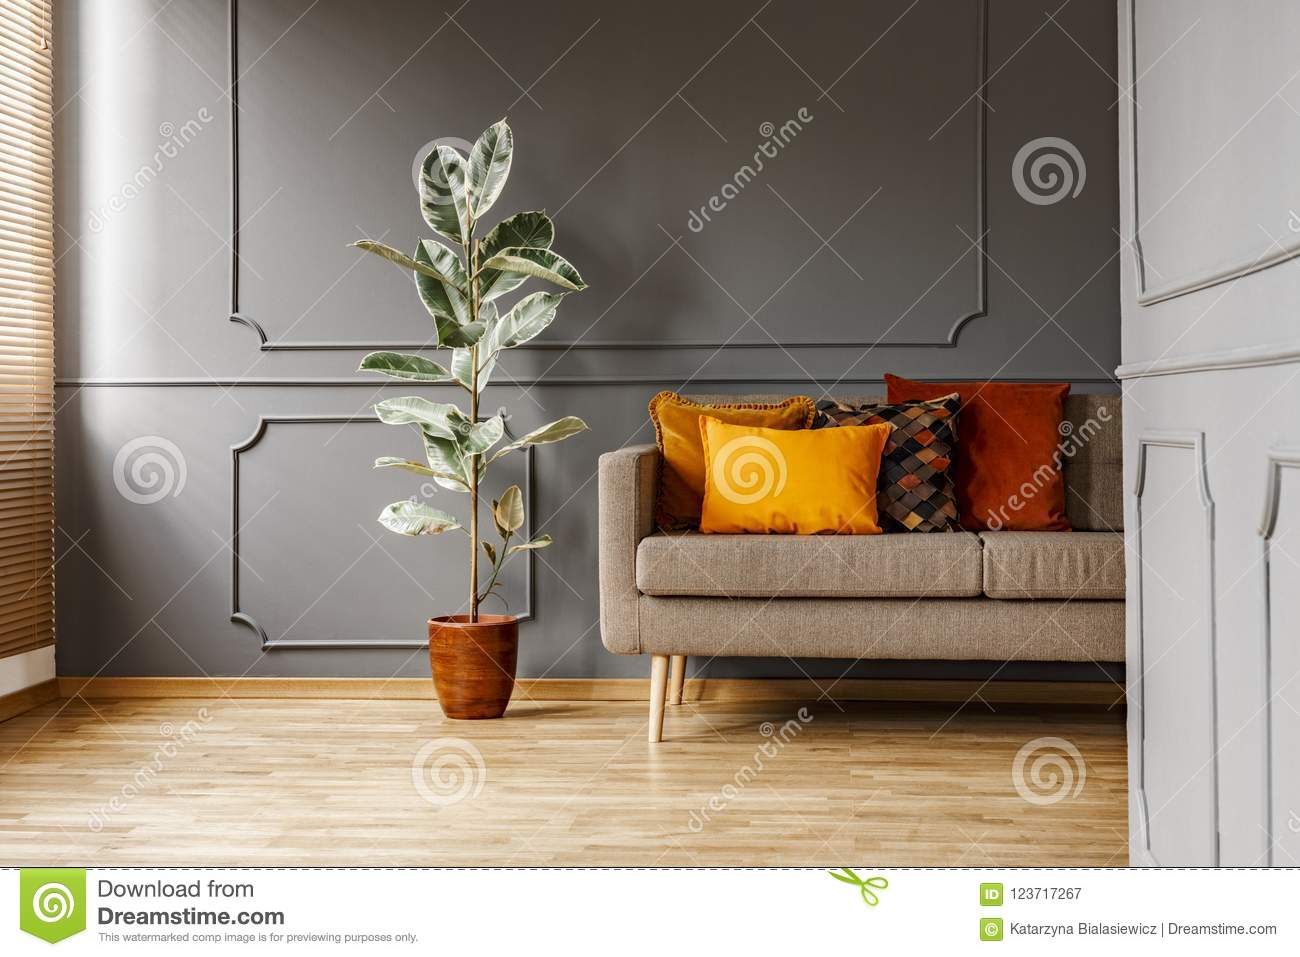 Phenomenal Ficus Next To Brown Couch With Orange Pillows In Dark Grey Caraccident5 Cool Chair Designs And Ideas Caraccident5Info